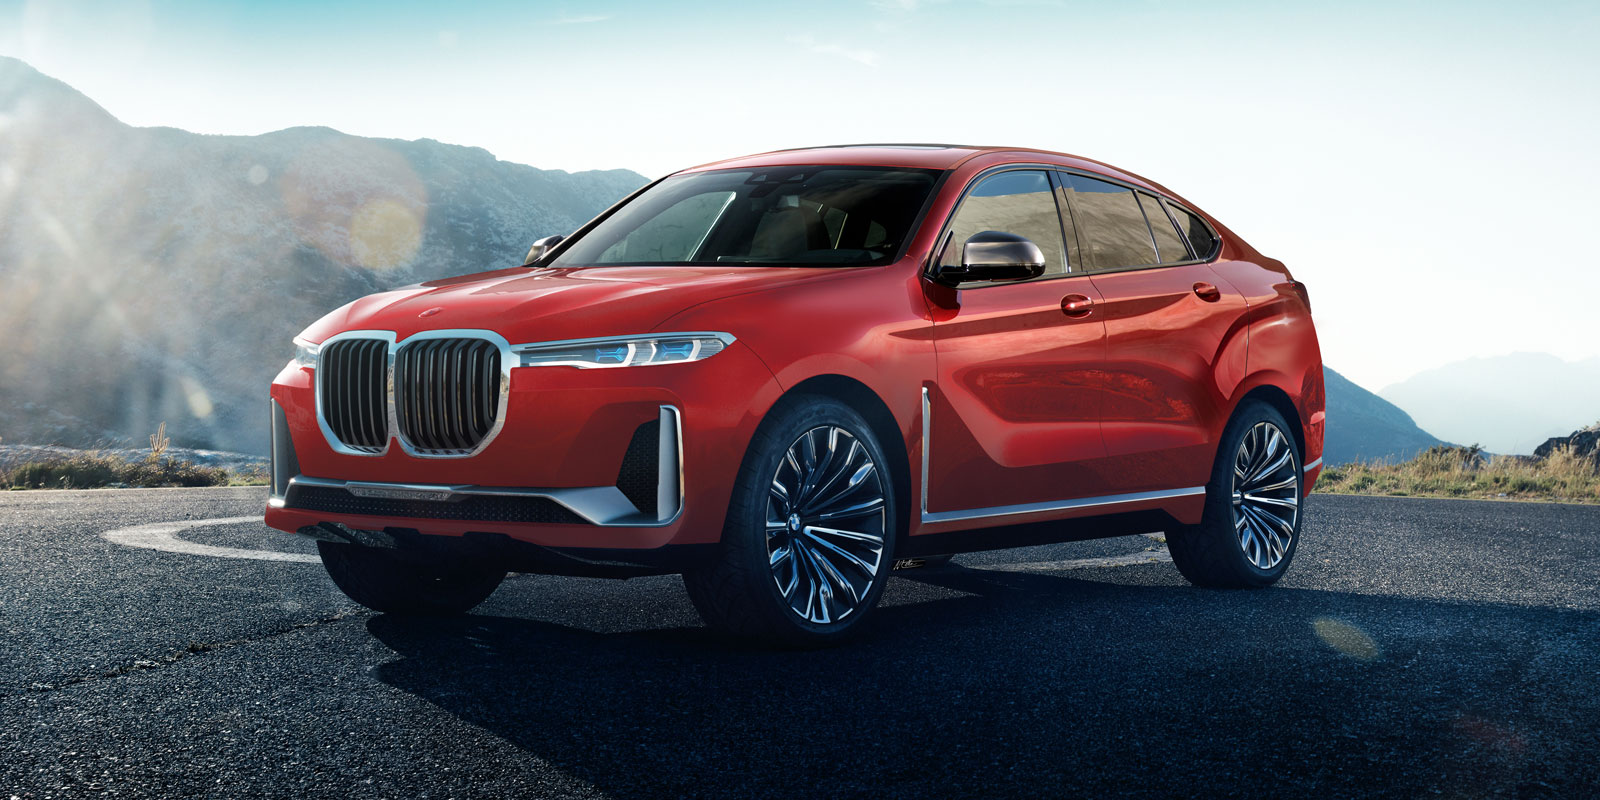 2021 Bmw X8 Price Specs And Release Date Carwow